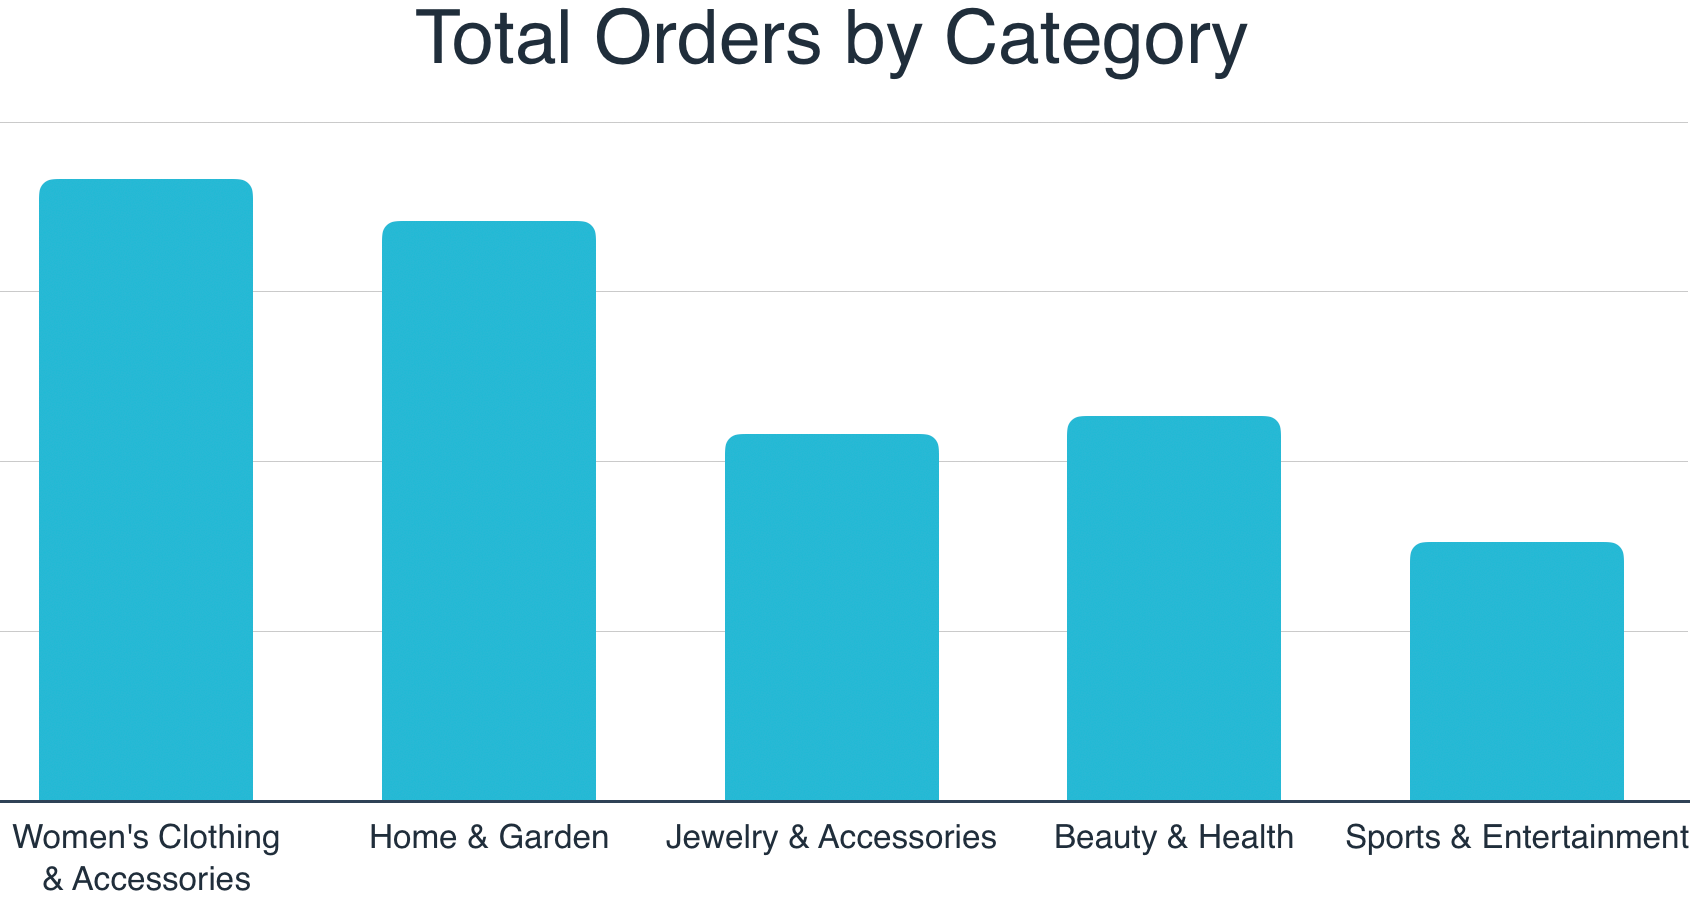 2019 Niche Australian Markets by Orders